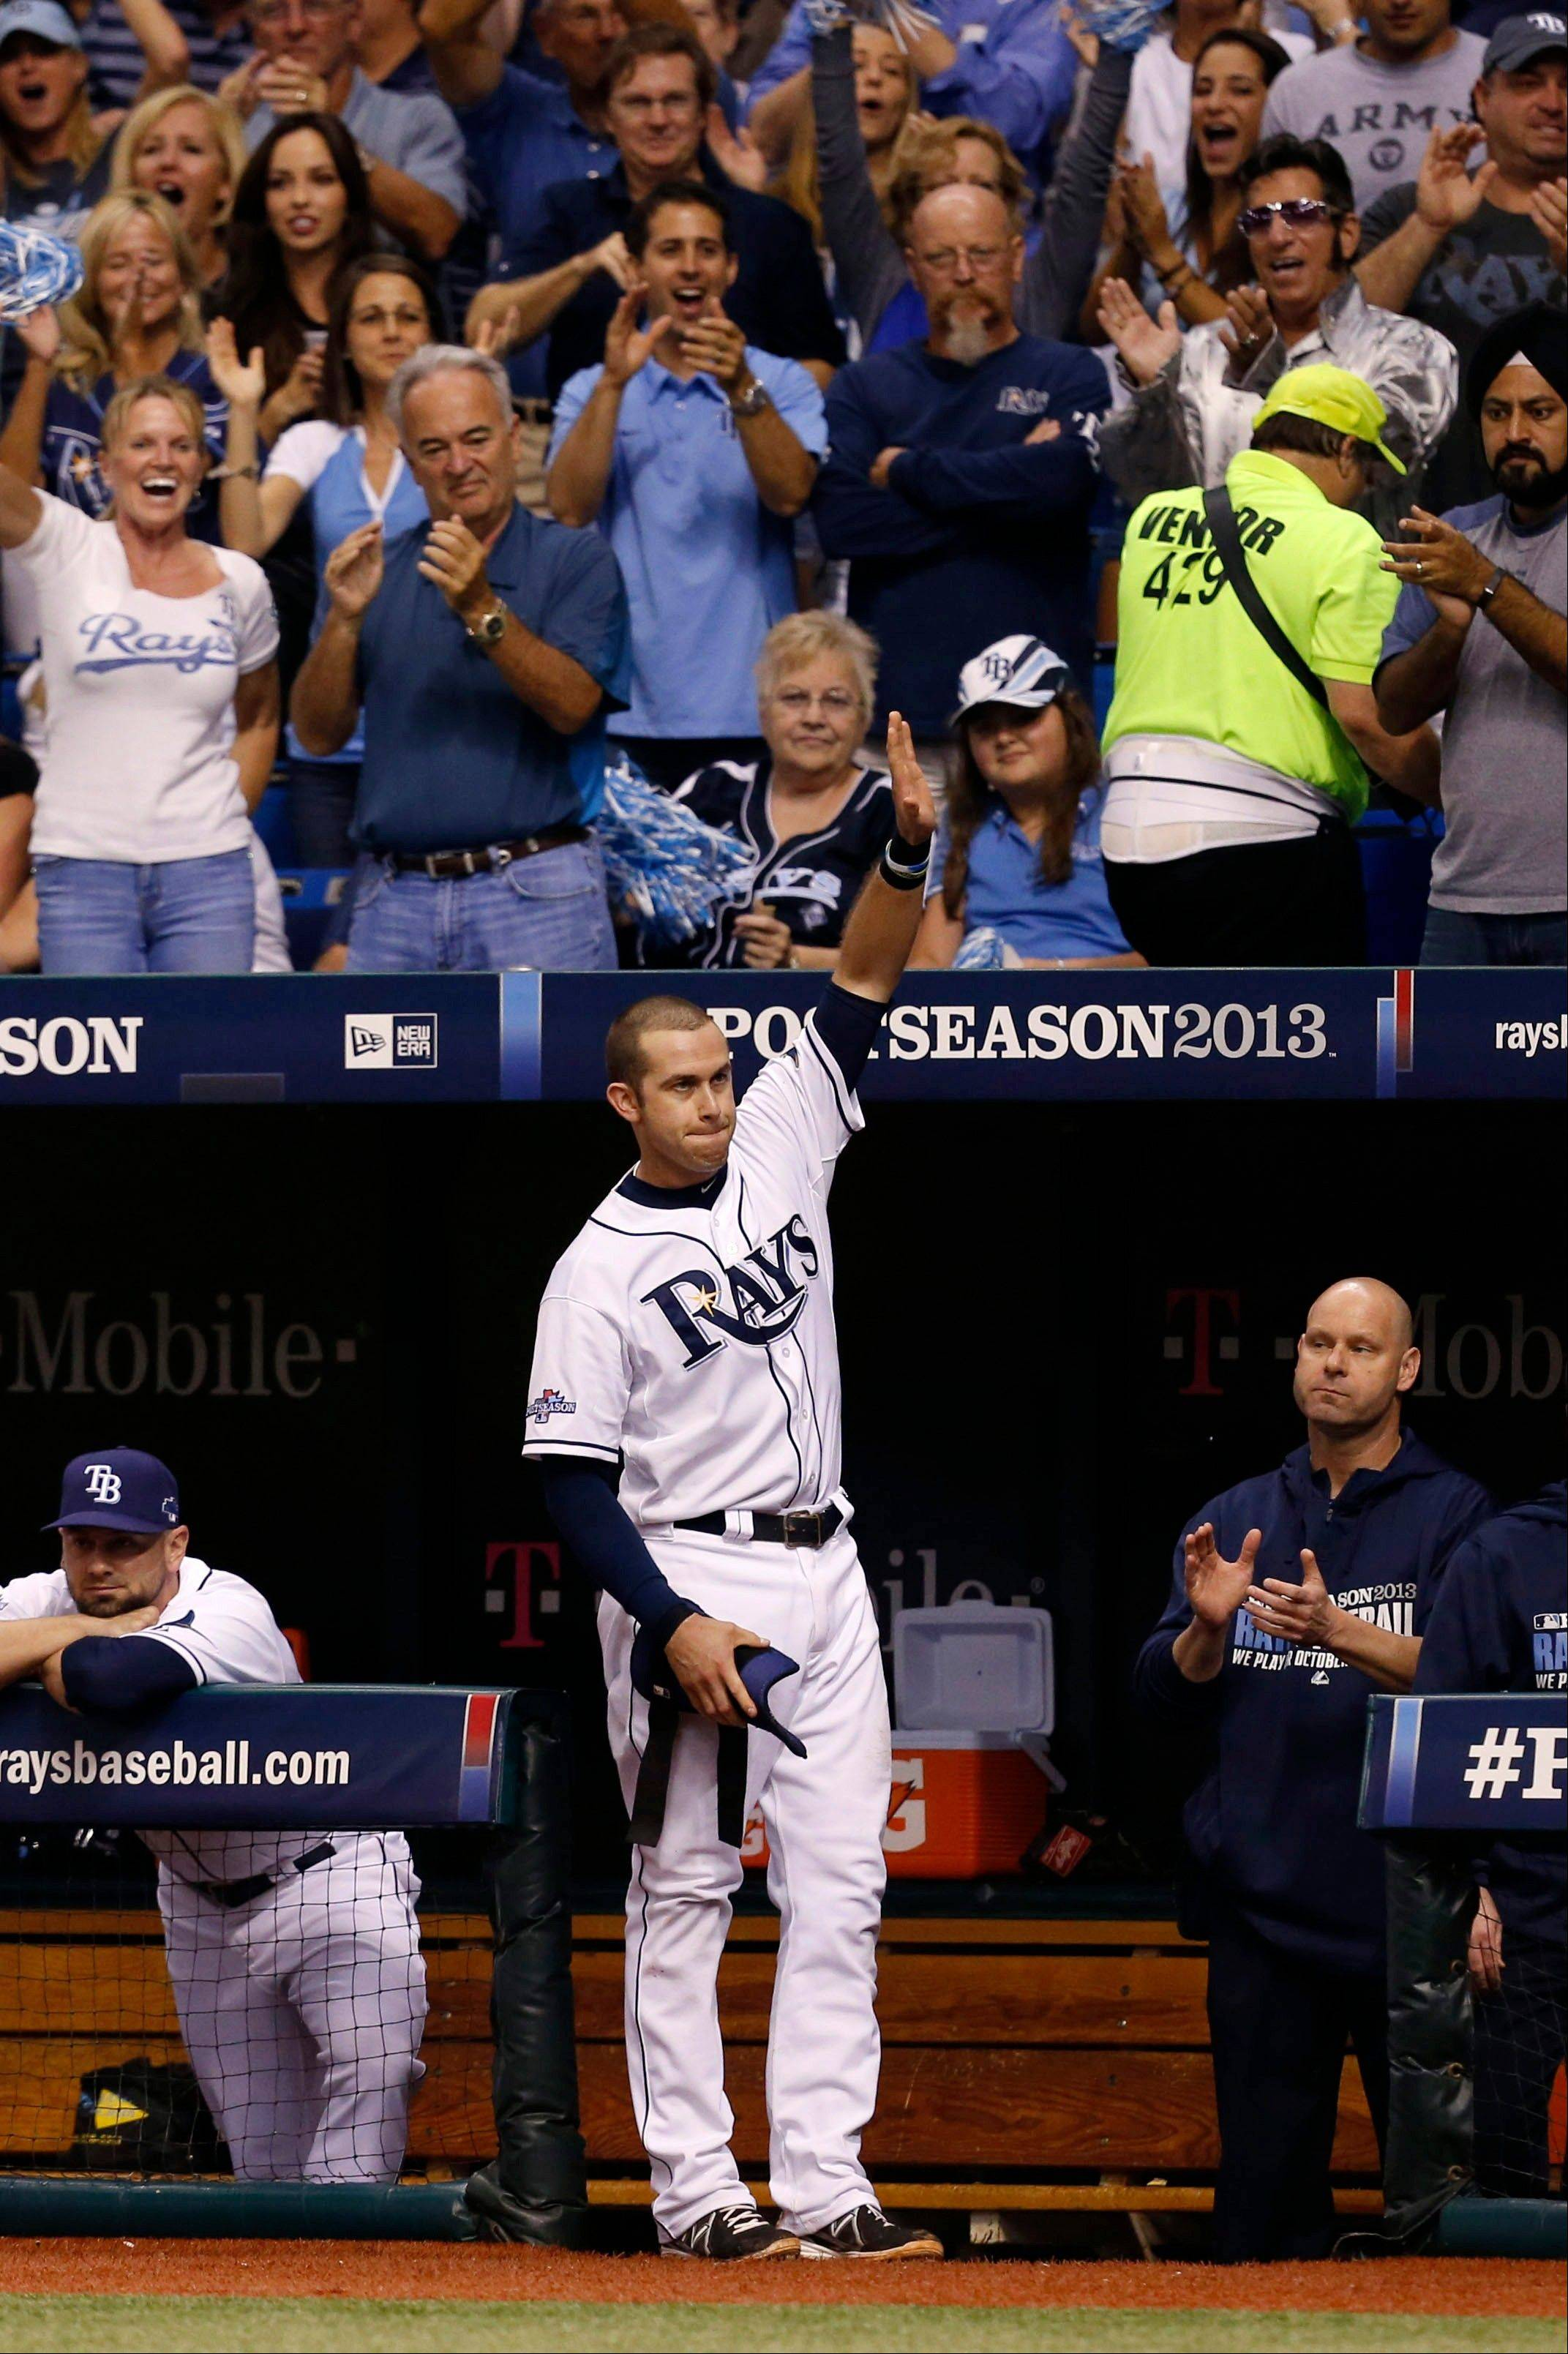 The Rays' Evan Longoria waves to the home crowd after hitting a three-run home run in the fifth inning Monday in Game 3 of an American League Division Series against the Boston Red Sox.